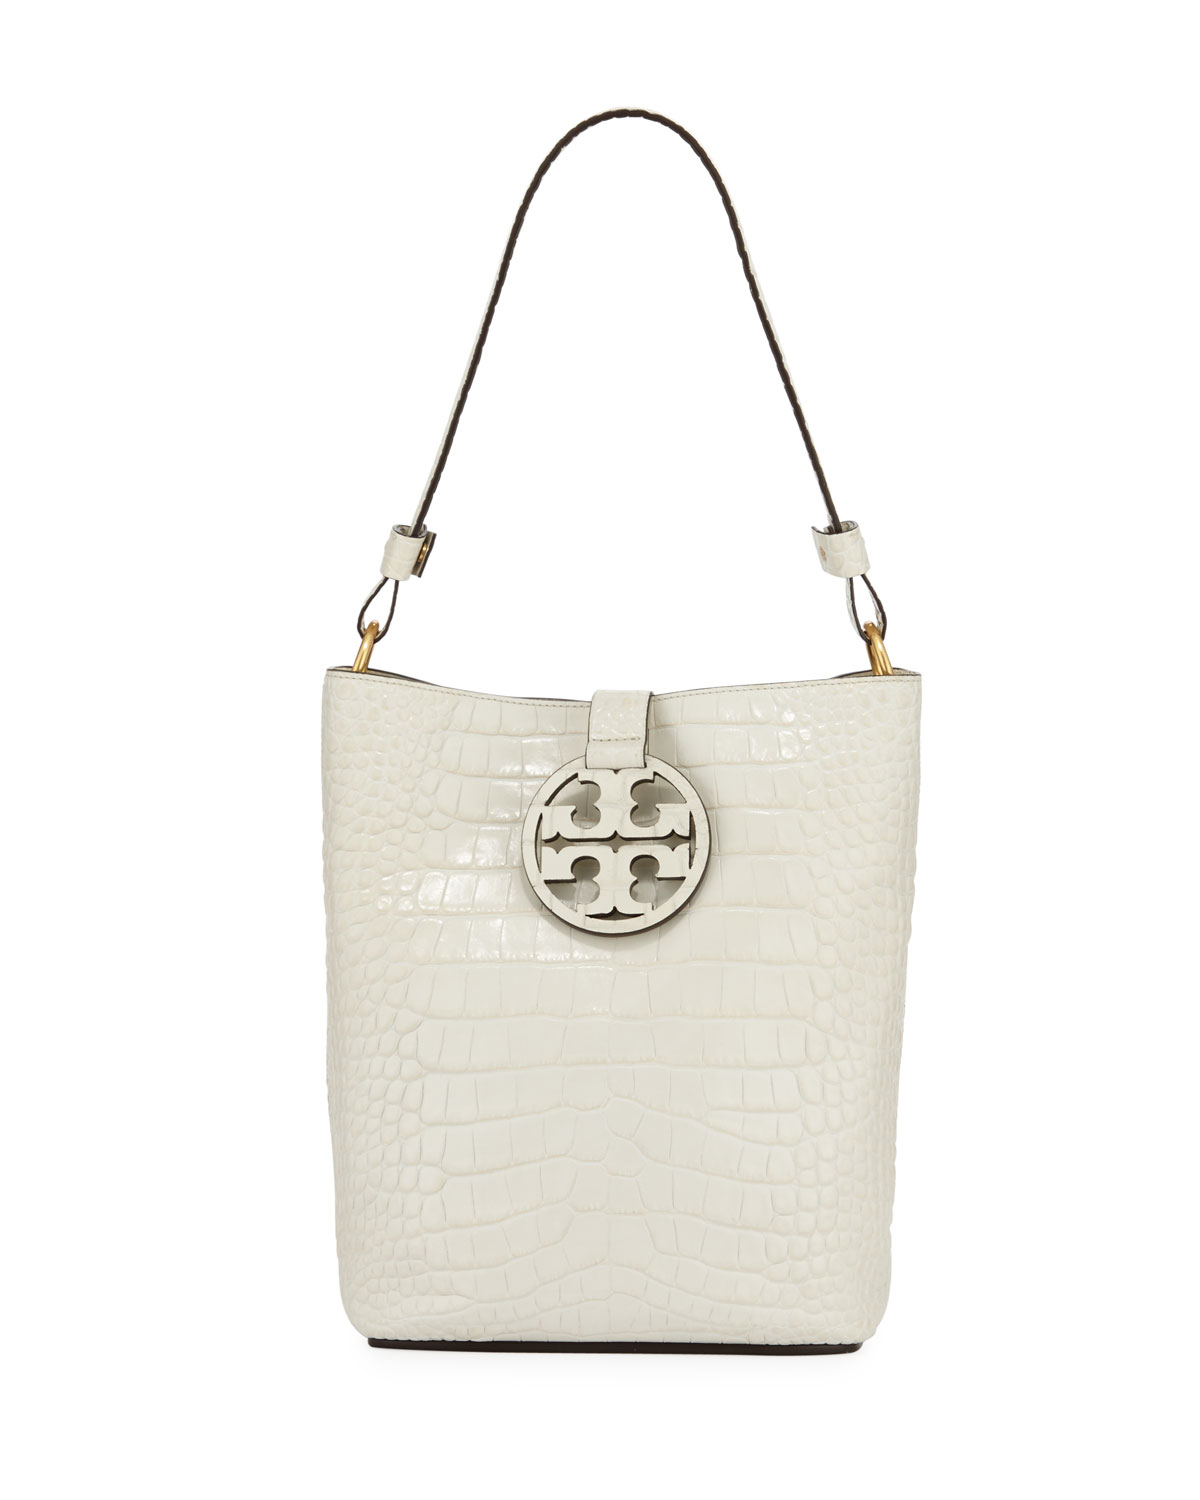 634dd22ff94 Tory Burch Miller Embossed Leather Hobo Bag